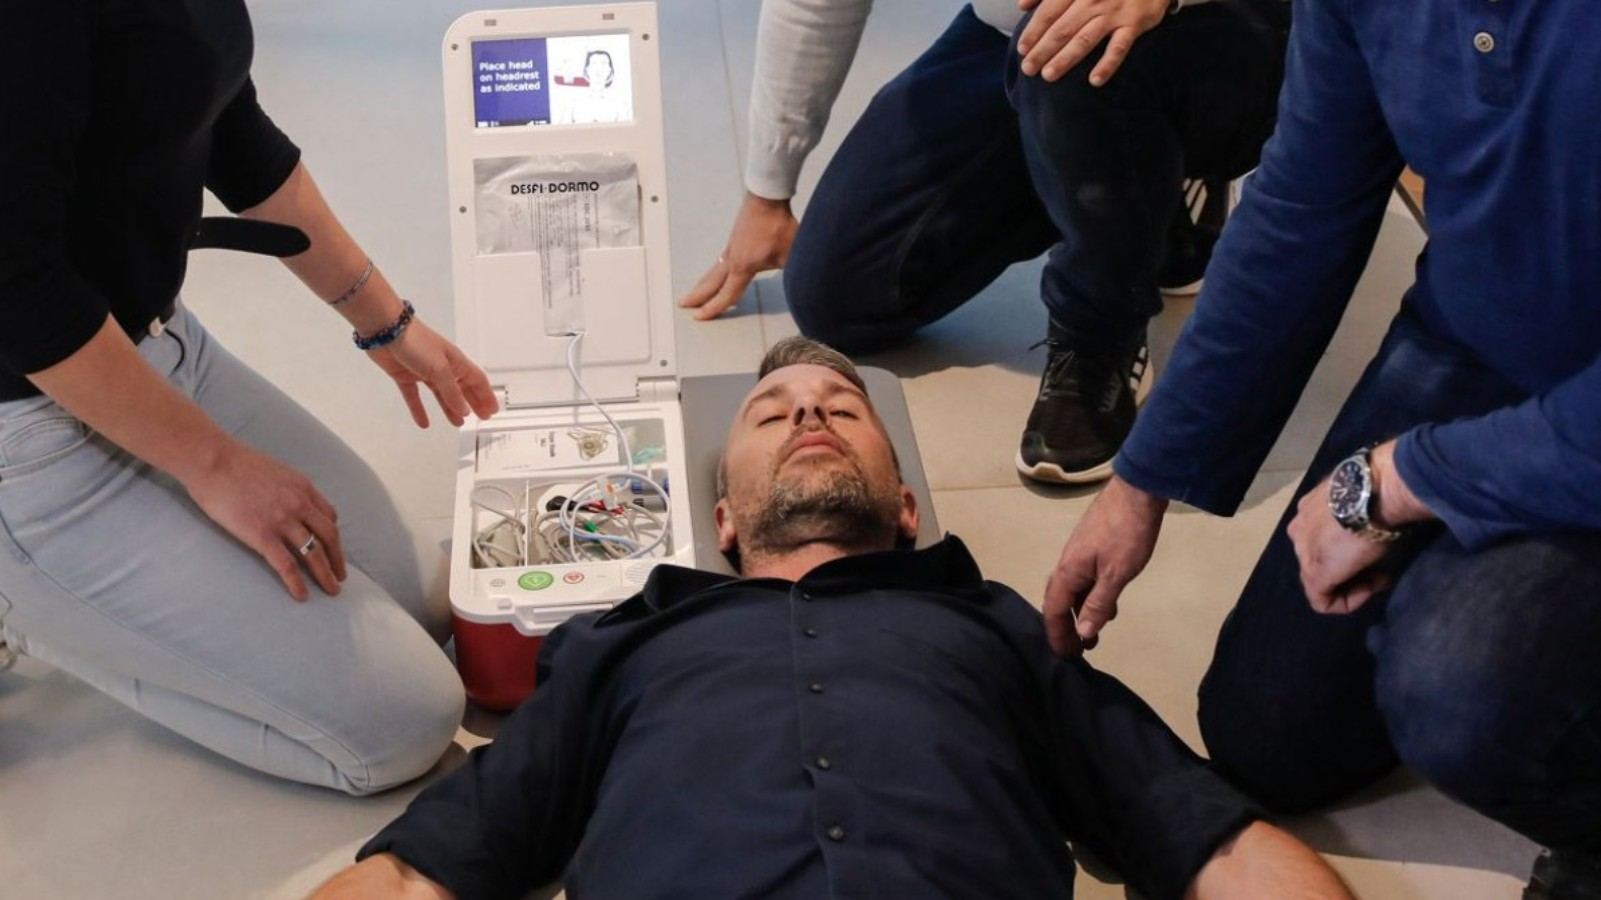 SALI from Inovytec provides everything bystanders need to begin first aid. (Courtesy of Inovytec)